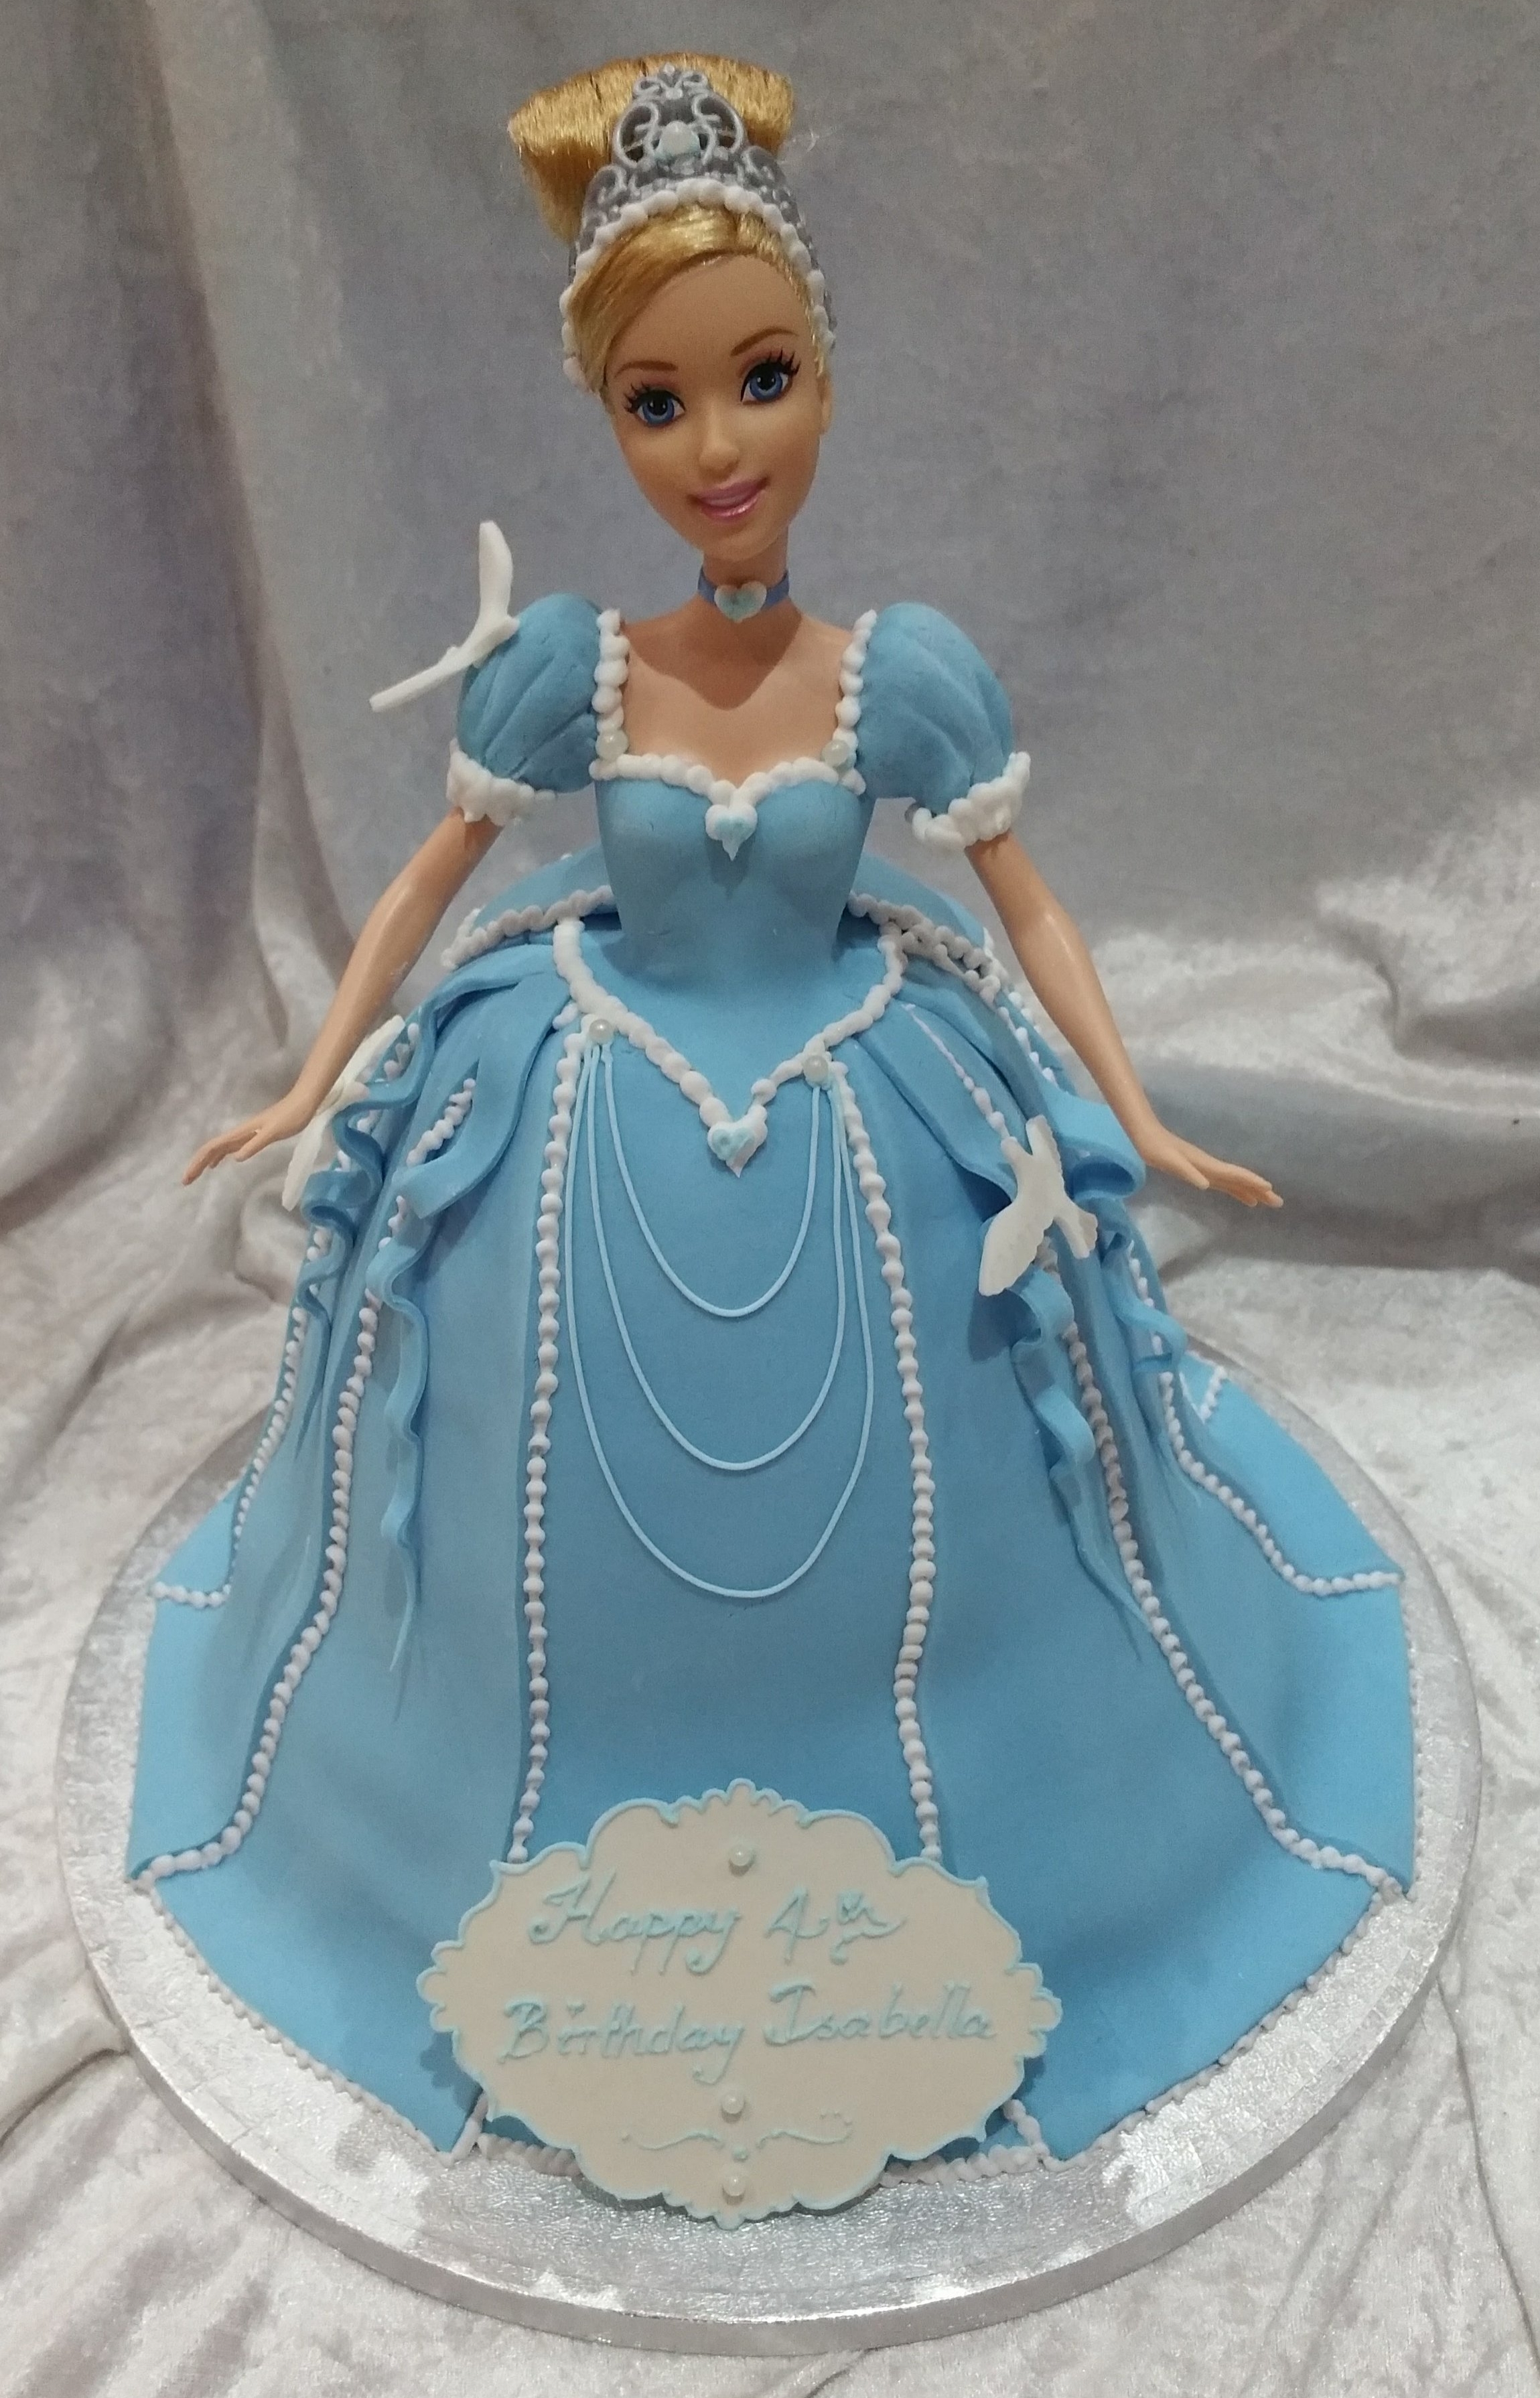 Delicious in the detail - A pretty Cinderella dolly cake for Isabella for her Princess party.  We added plenty of detail in the bows, ribbons and birds to make it as appealing as we could and just right for Cinderella... and Isabella.